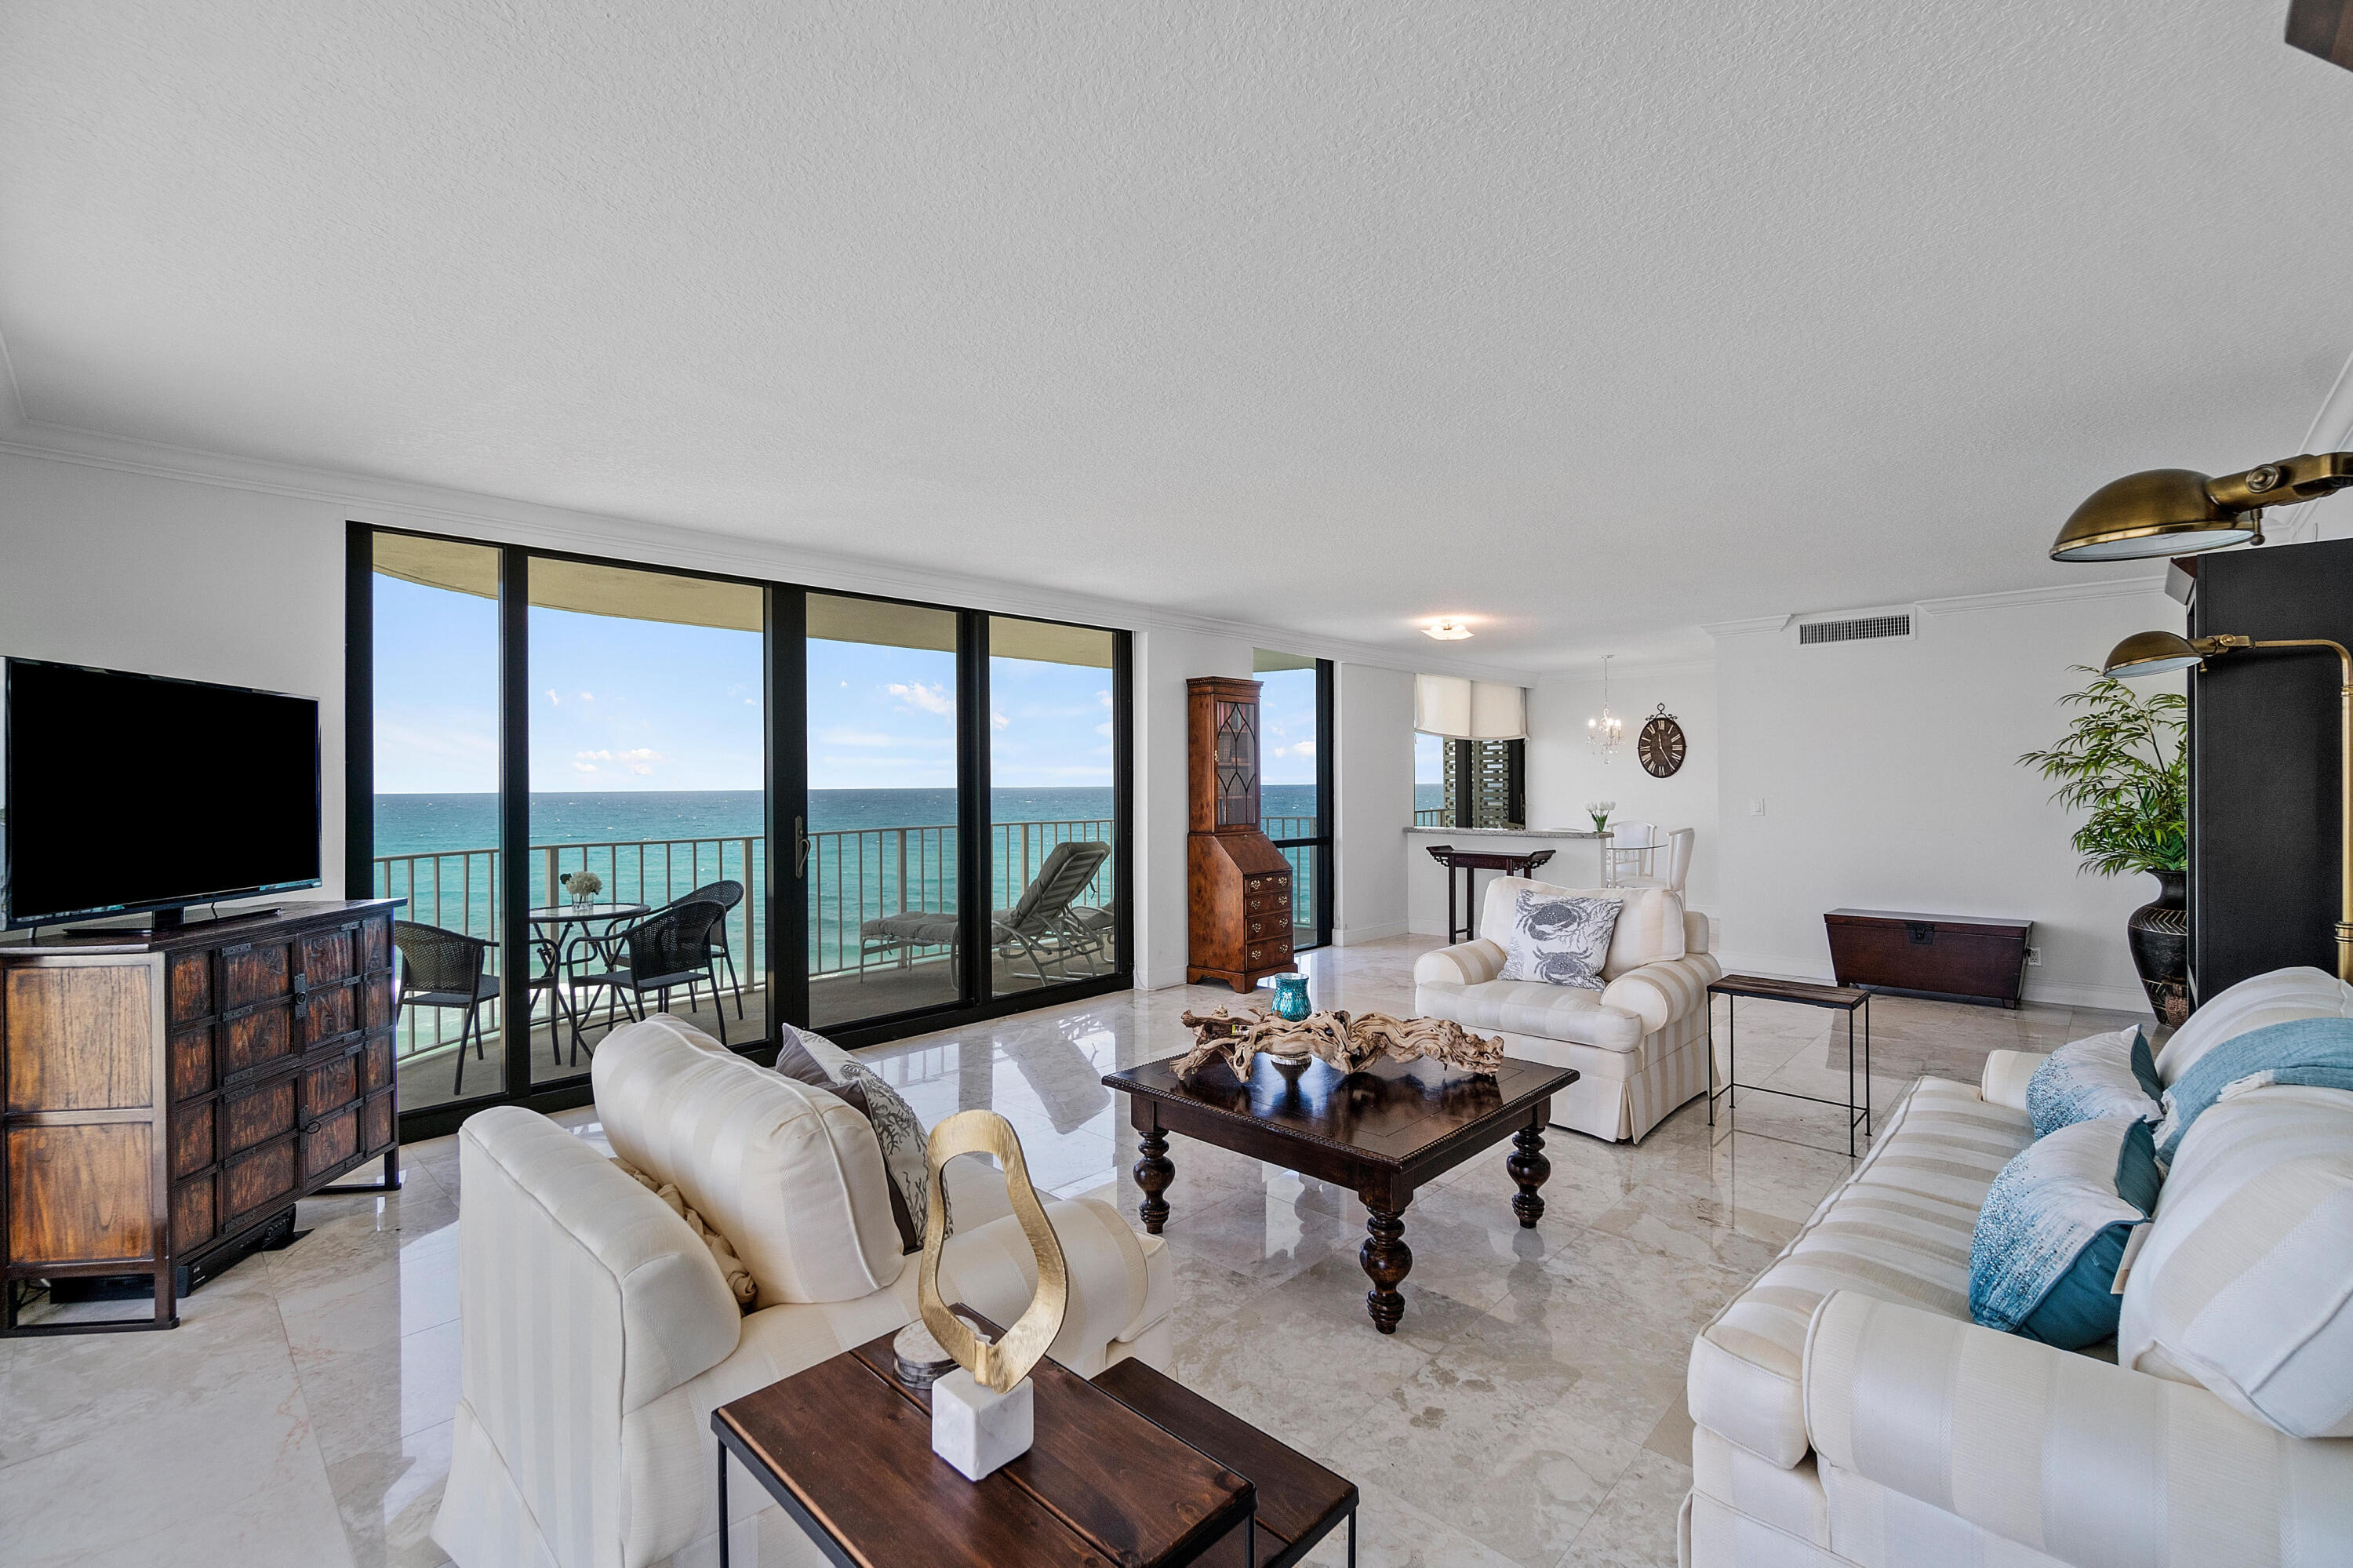 Amazing panoramic Ocean and Intracoastal views from every room in this expansive penthouse luxury Condo! Featuring floor to ceiling impact glass sliders and windows throughout the condo. Wrap-around balcony is deep and allows you to enjoy sunrise ocean and sunset intracoastal views, including access from each bedroom. Bedrooms are extremely spacious with hardwoods and ample fitted walk-in closets and additional storage. Updated kitchen and bathrooms, motorized sunshades, marble flooring and crown-molding are just a few key highlights of this home in the sky. Full-service amenity building offers 24-hour doorman/concierge, 2 new clay tennis courts, renovated gym, sauna, clubhouse, salt-water pool with entertaining deck & new grilling stations, premium garage parking, deeded private beach... access with a new lounge deck. Conveniently located near shopping restaurants, Palm Beach Lake Trail ideal for biking and walking, Par-3 Golf Course, Town tennis center and Palm Beach International Airport.